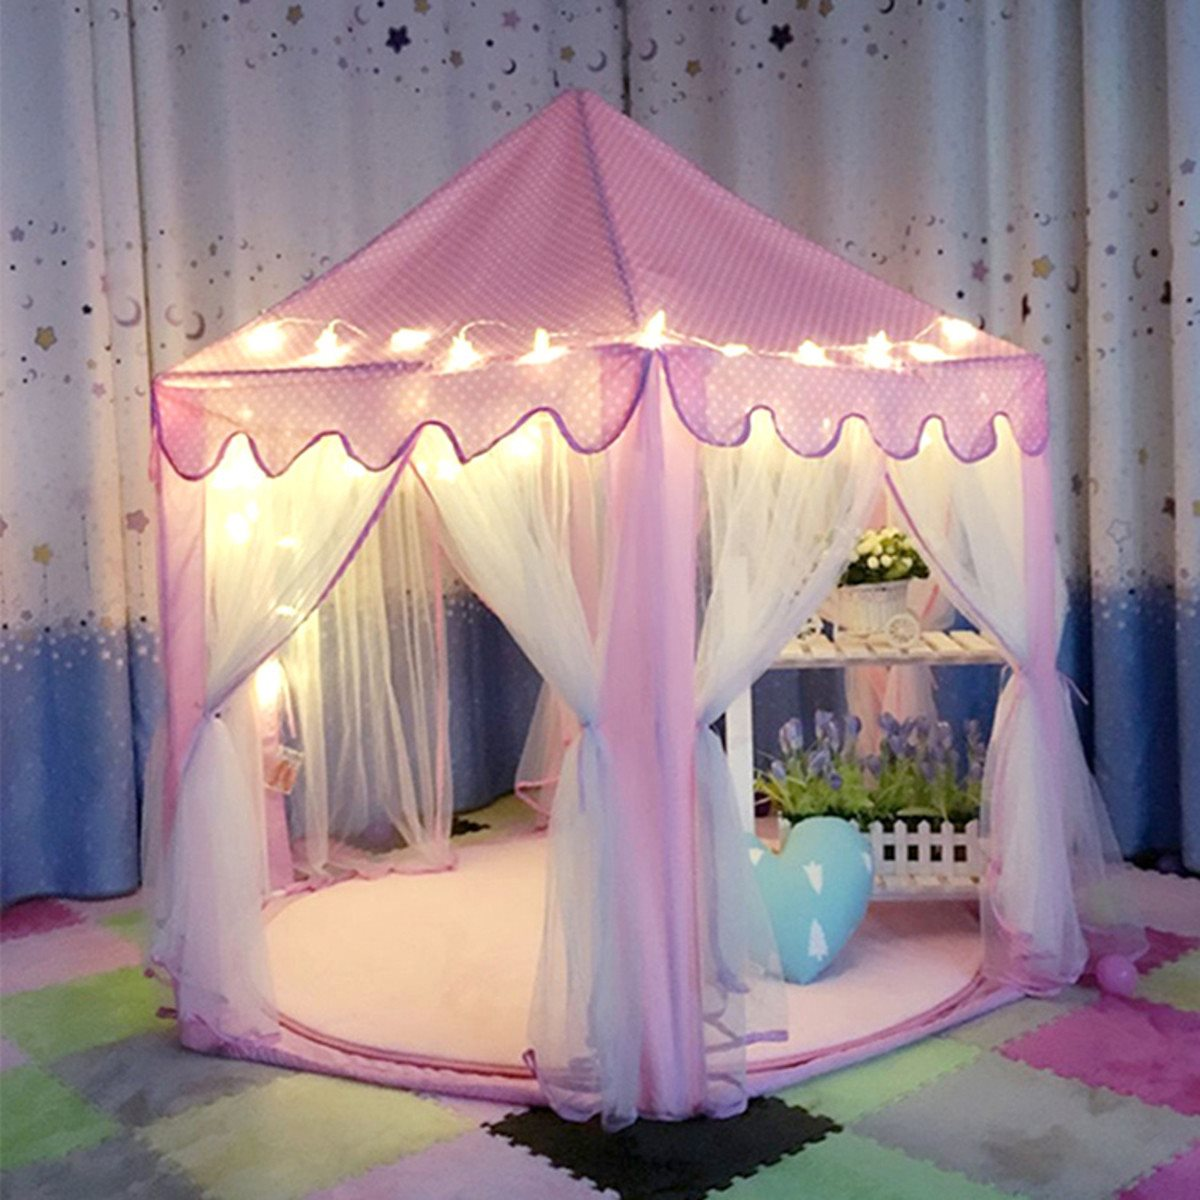 Lovely Girls Pink Portable Princess Castle Cute Playhouse Children Kids Play Tent Outdoor Toys Beach Tent For Children Kids